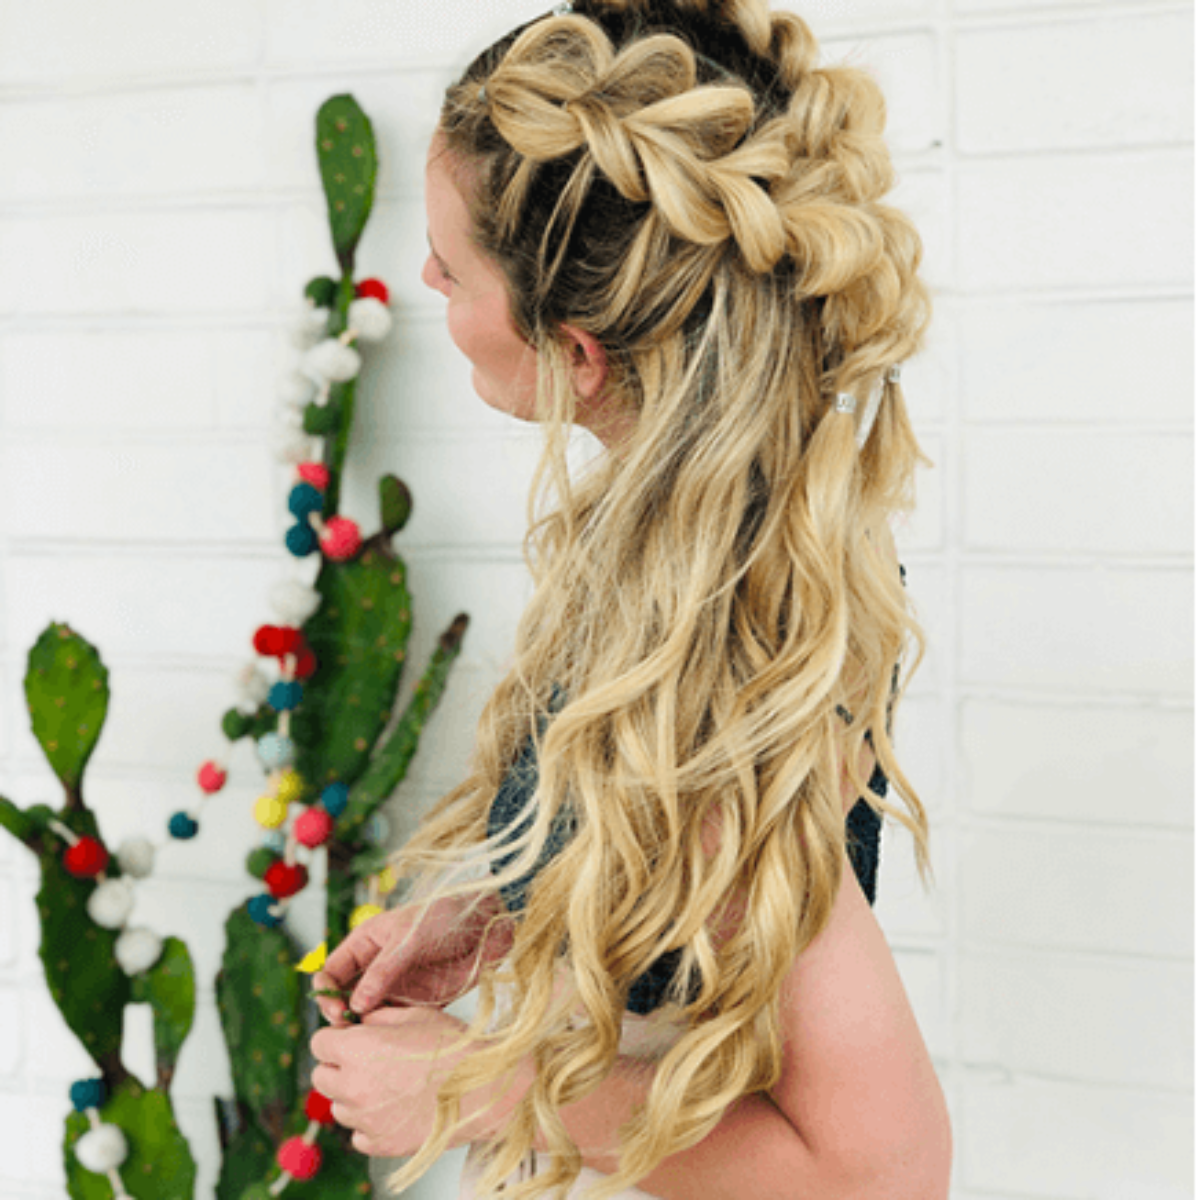 Beautiful thick blonde hair in big braid and loose curls